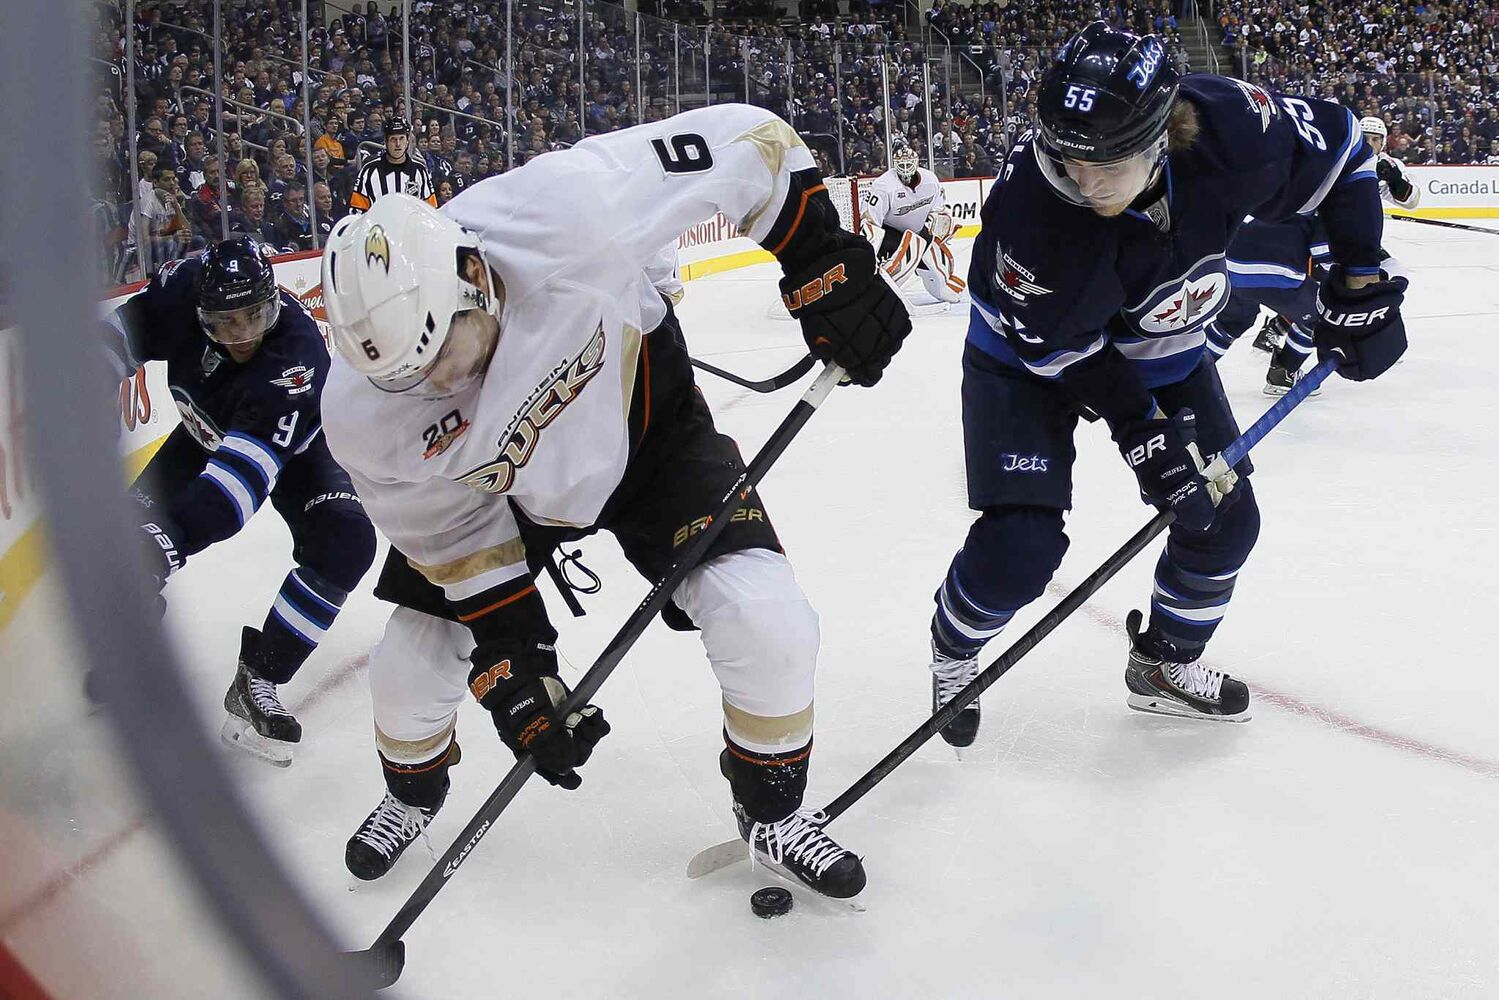 Winnipeg Jets' Evander Kane (left) and Mark Scheifele battle in the corner against Anaheim Ducks' Ben Lovejoy during the second period.